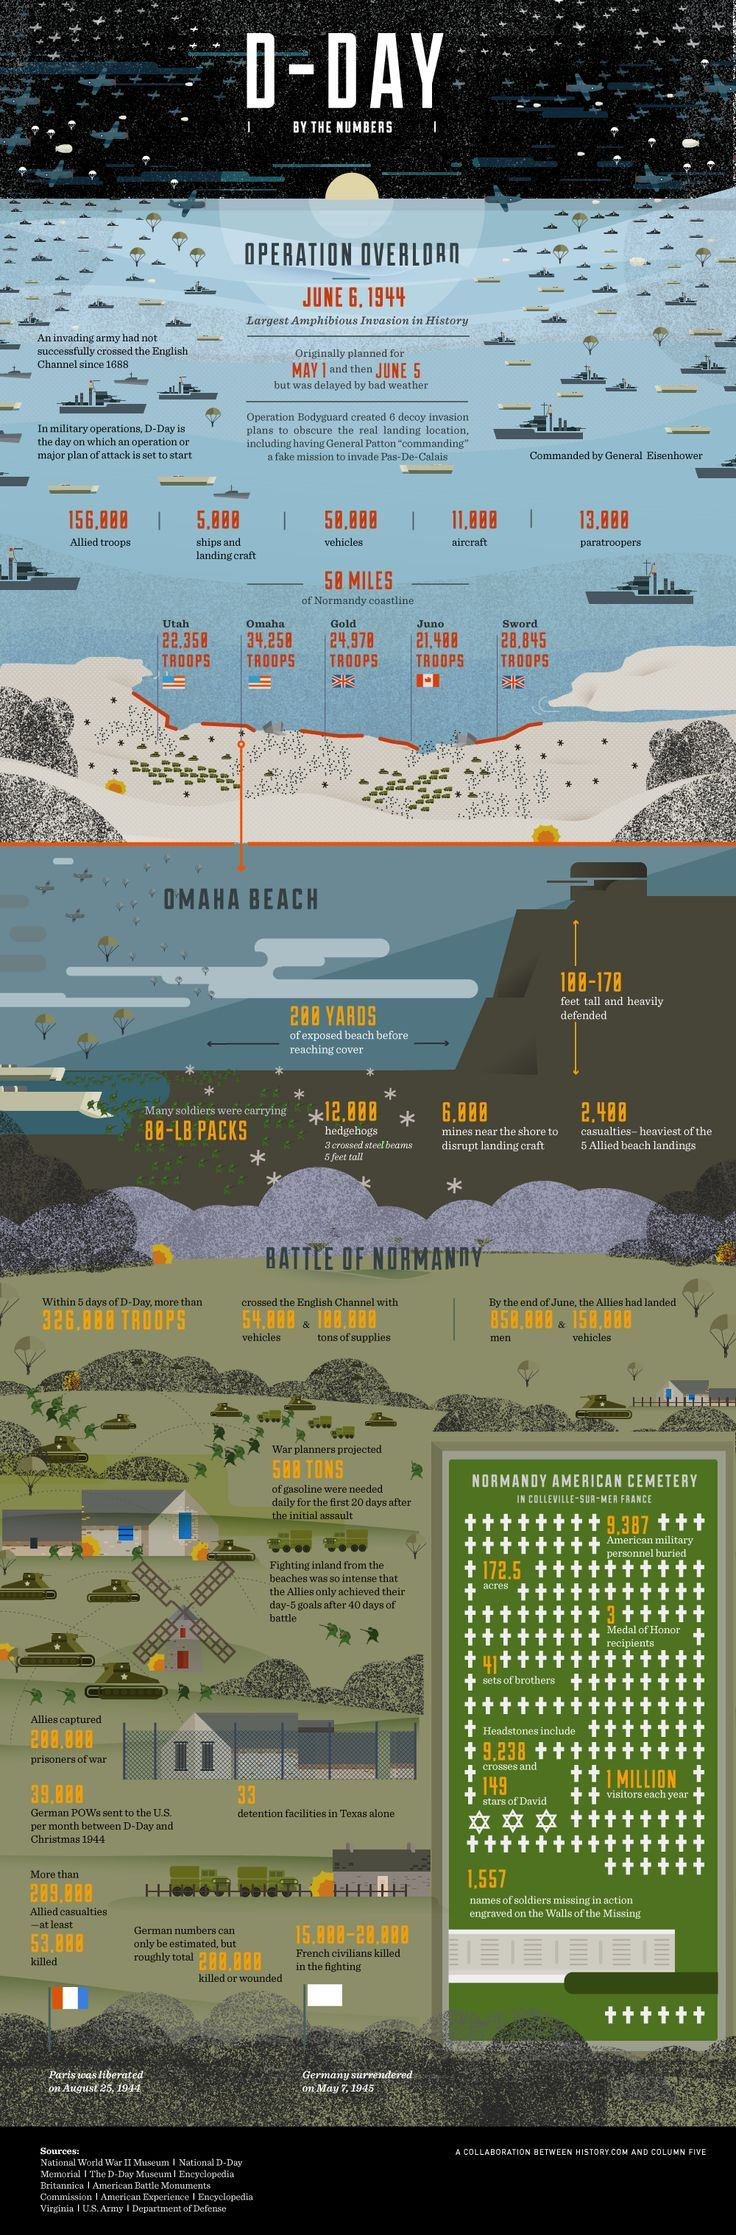 D-Day by the Numbers - A fascinating and sobering look at the realities of the D-Day invasion #infographic